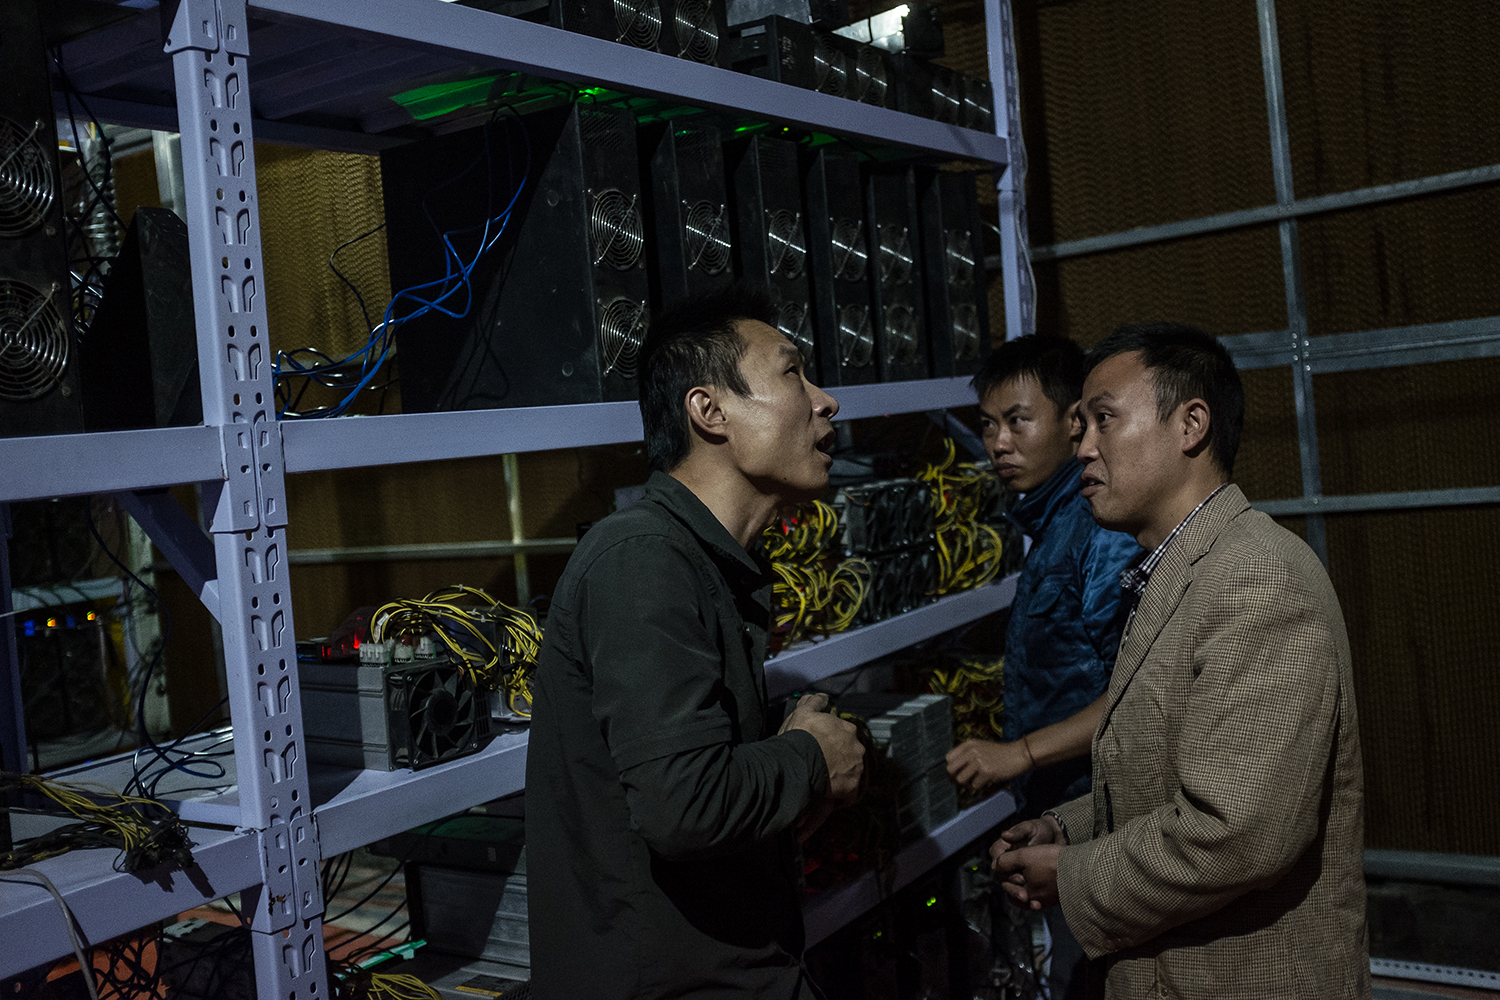 Liu meets with clients, September 27, 2016. He moved from Henan province to Sichuan province in 2015 for the cheaper electricity. Now, he manages more than 7,000 mining machines for clients all over the country. Meanwhile, his clients can monitor the machines' operation and Bitcoin earnings remotely using apps on their mobile phones.